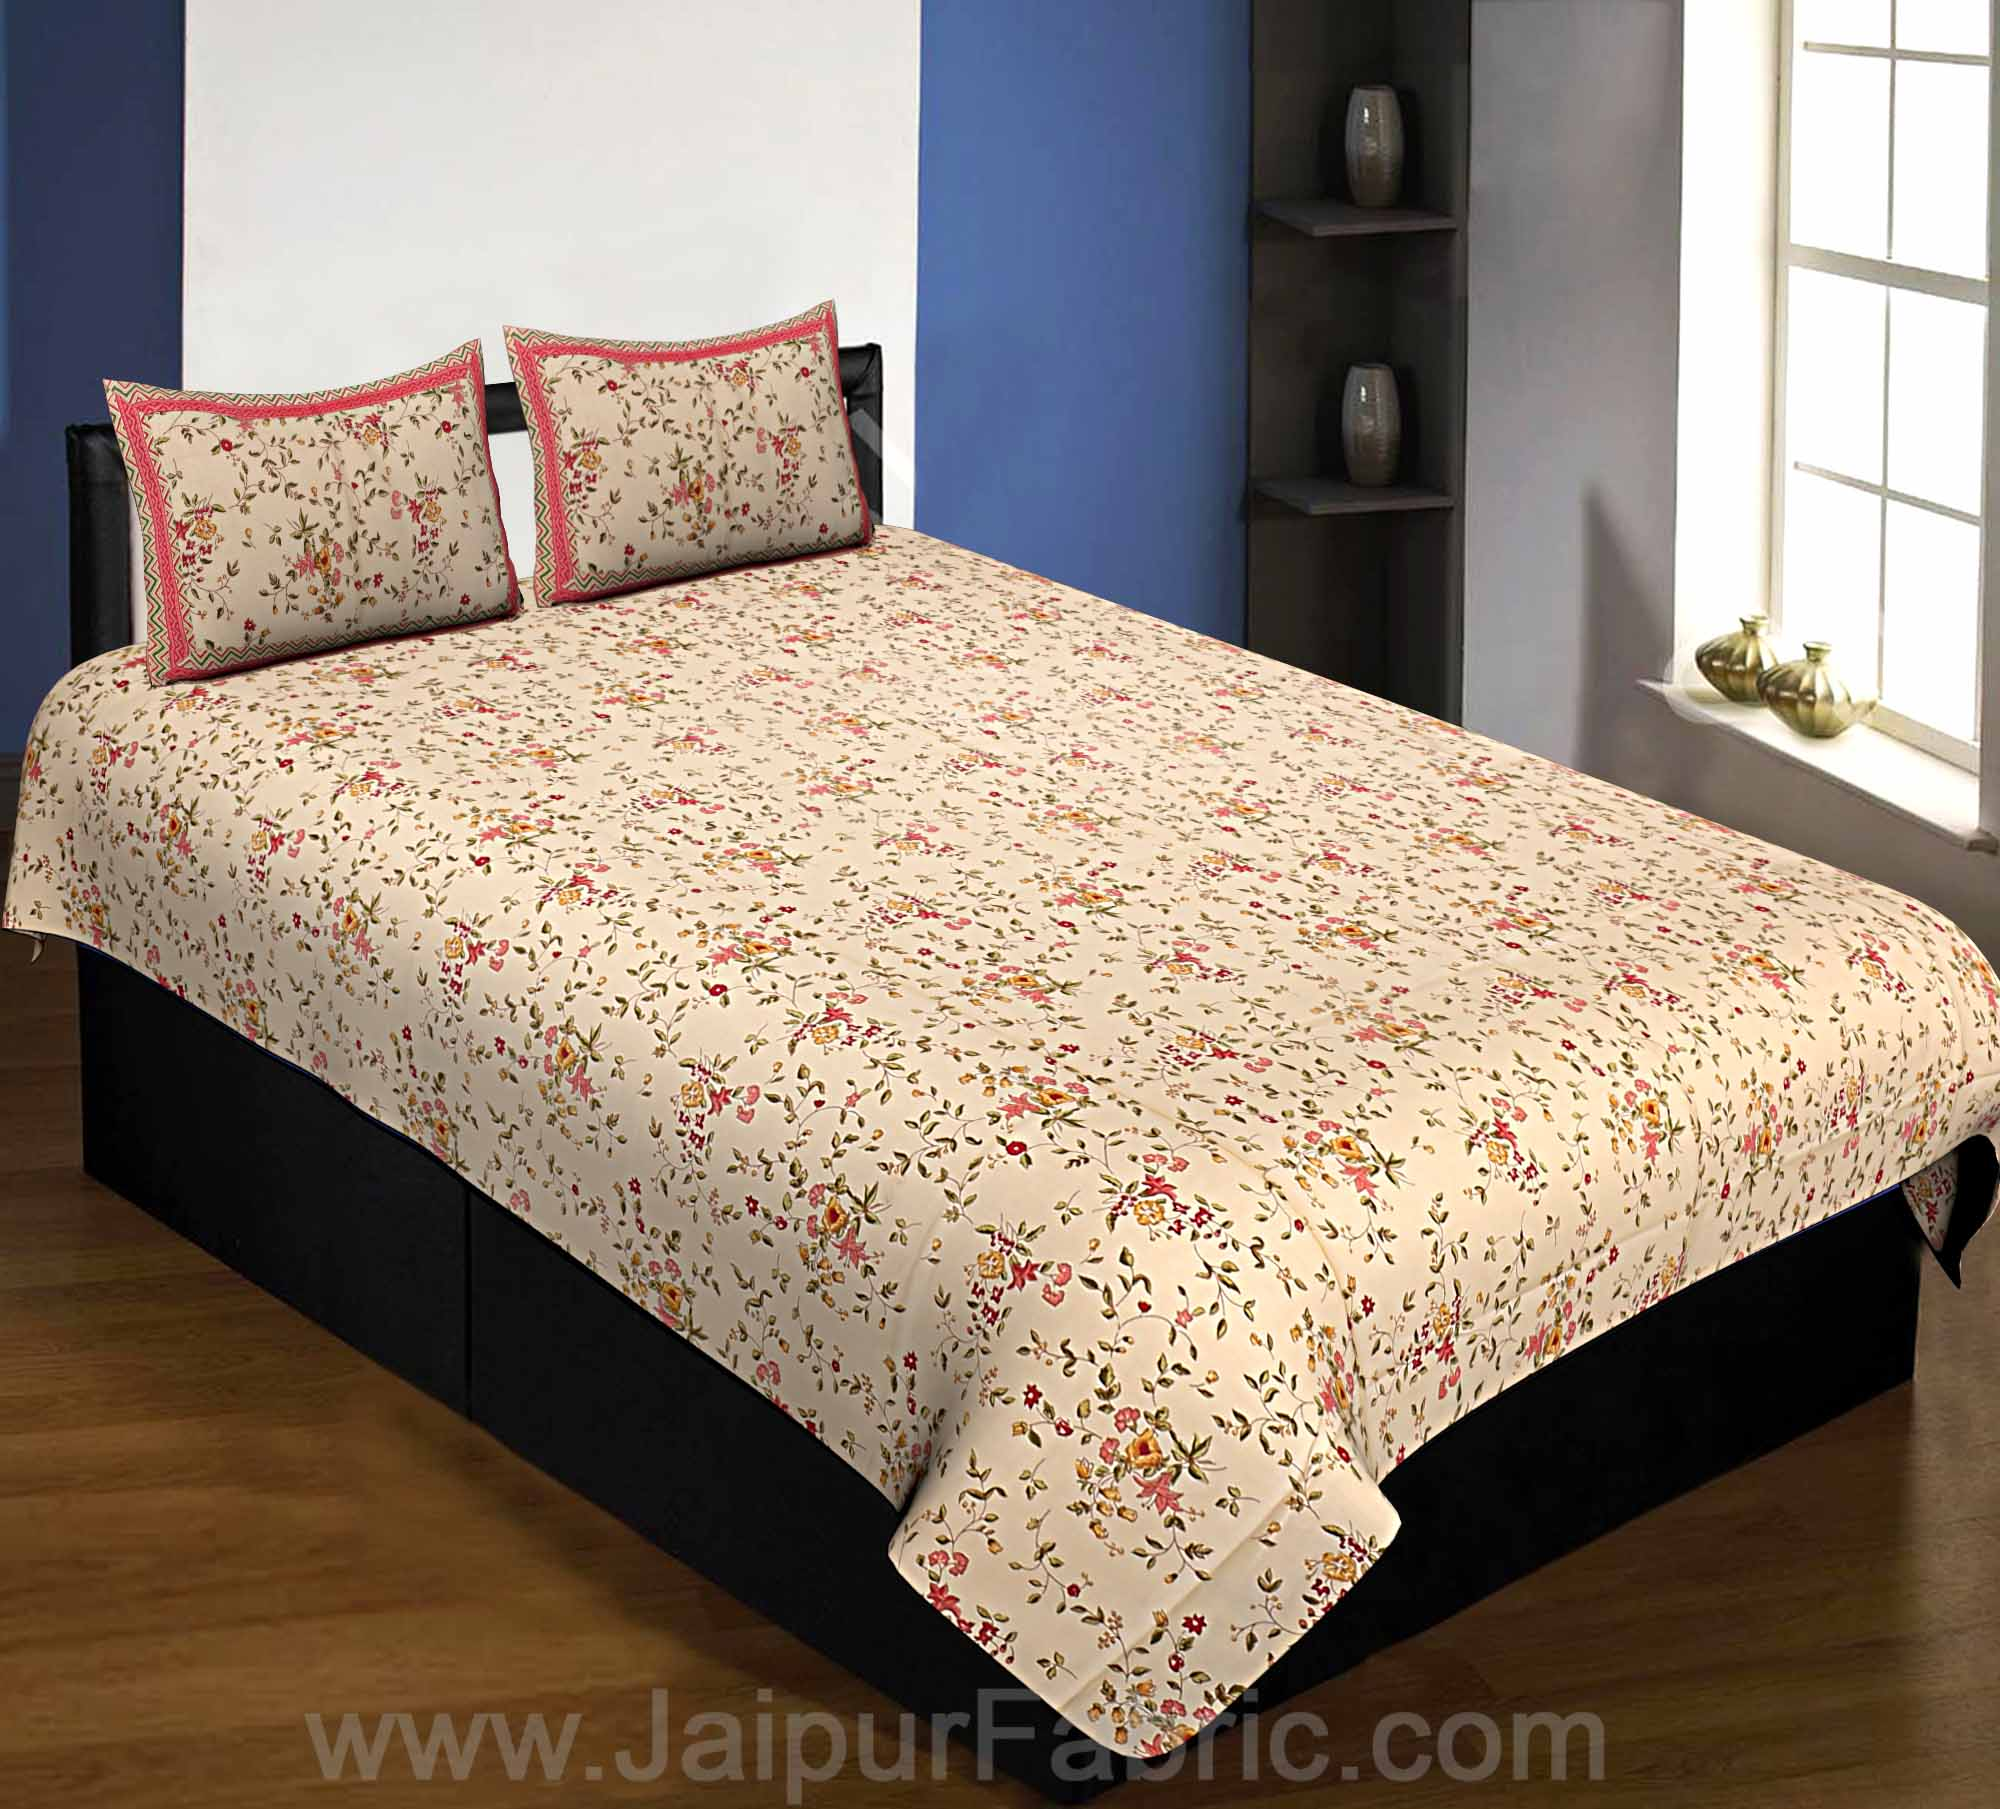 Pure Cotton 240 TC Single Bedsheet cream floral motif print taxable